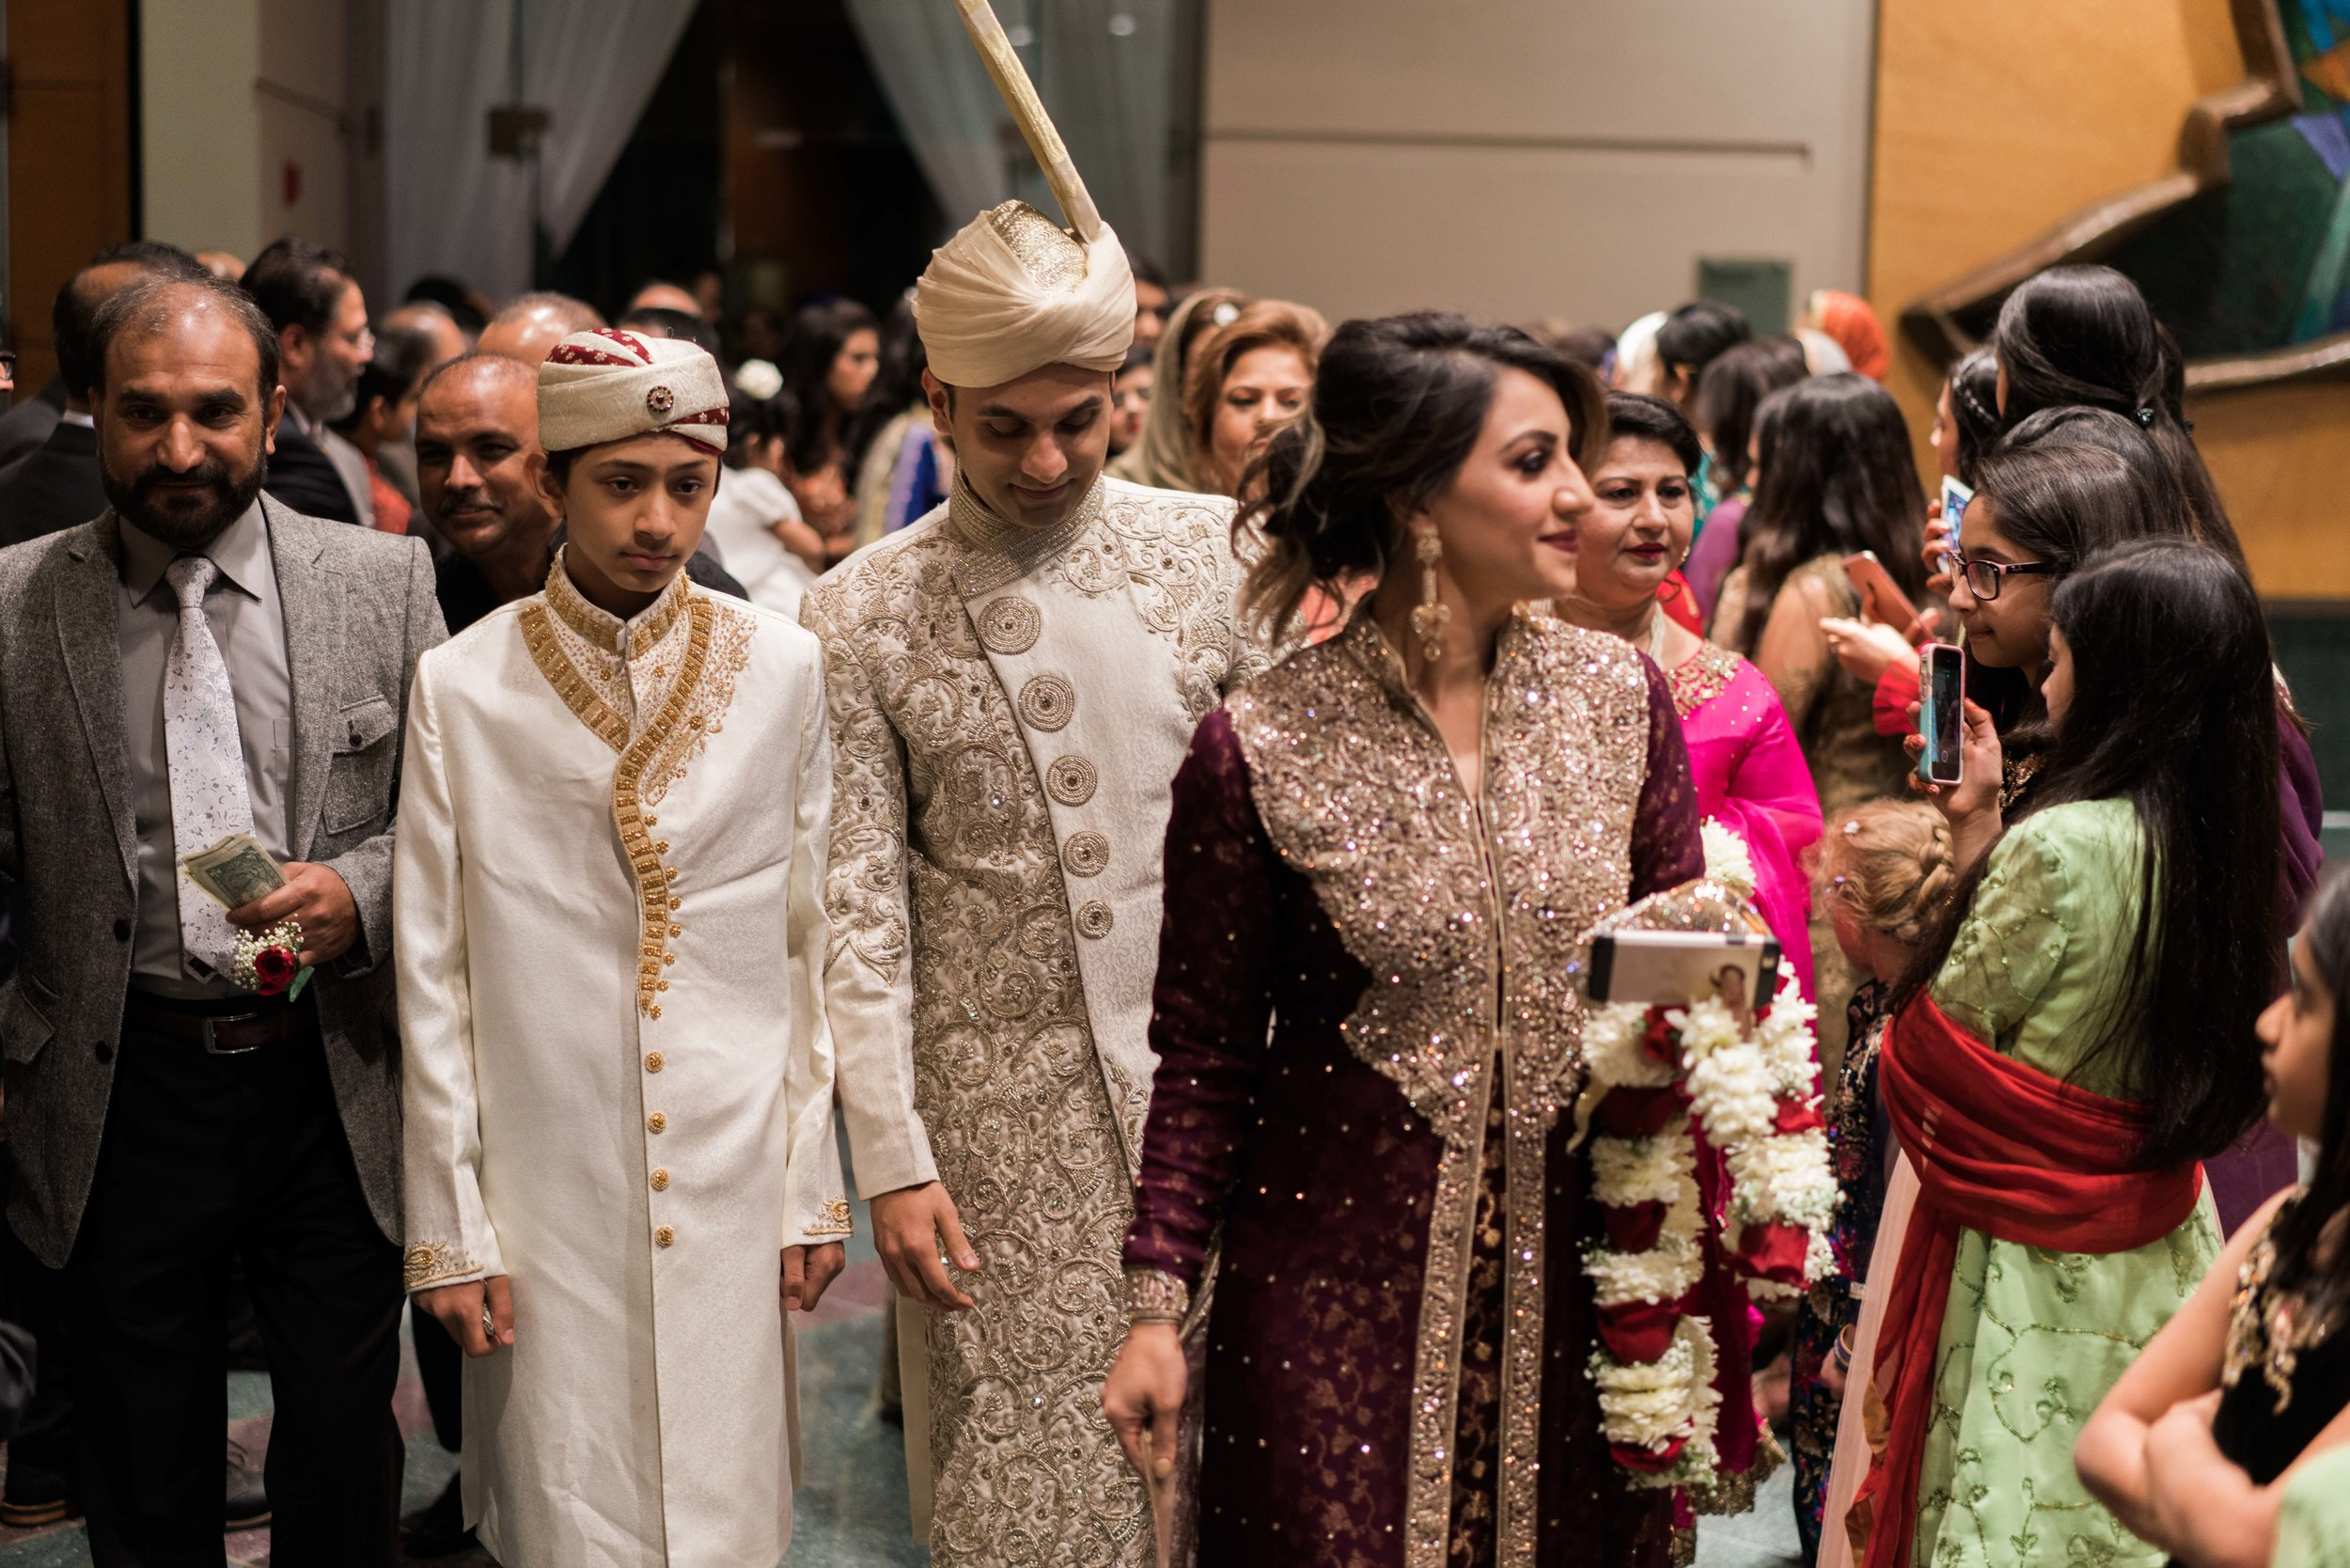 Nadia and Usman Blog Weddig Photography at Wintergarden by Monroe's in Rochester NY by Stefan Ludwig Photography-51.jpg